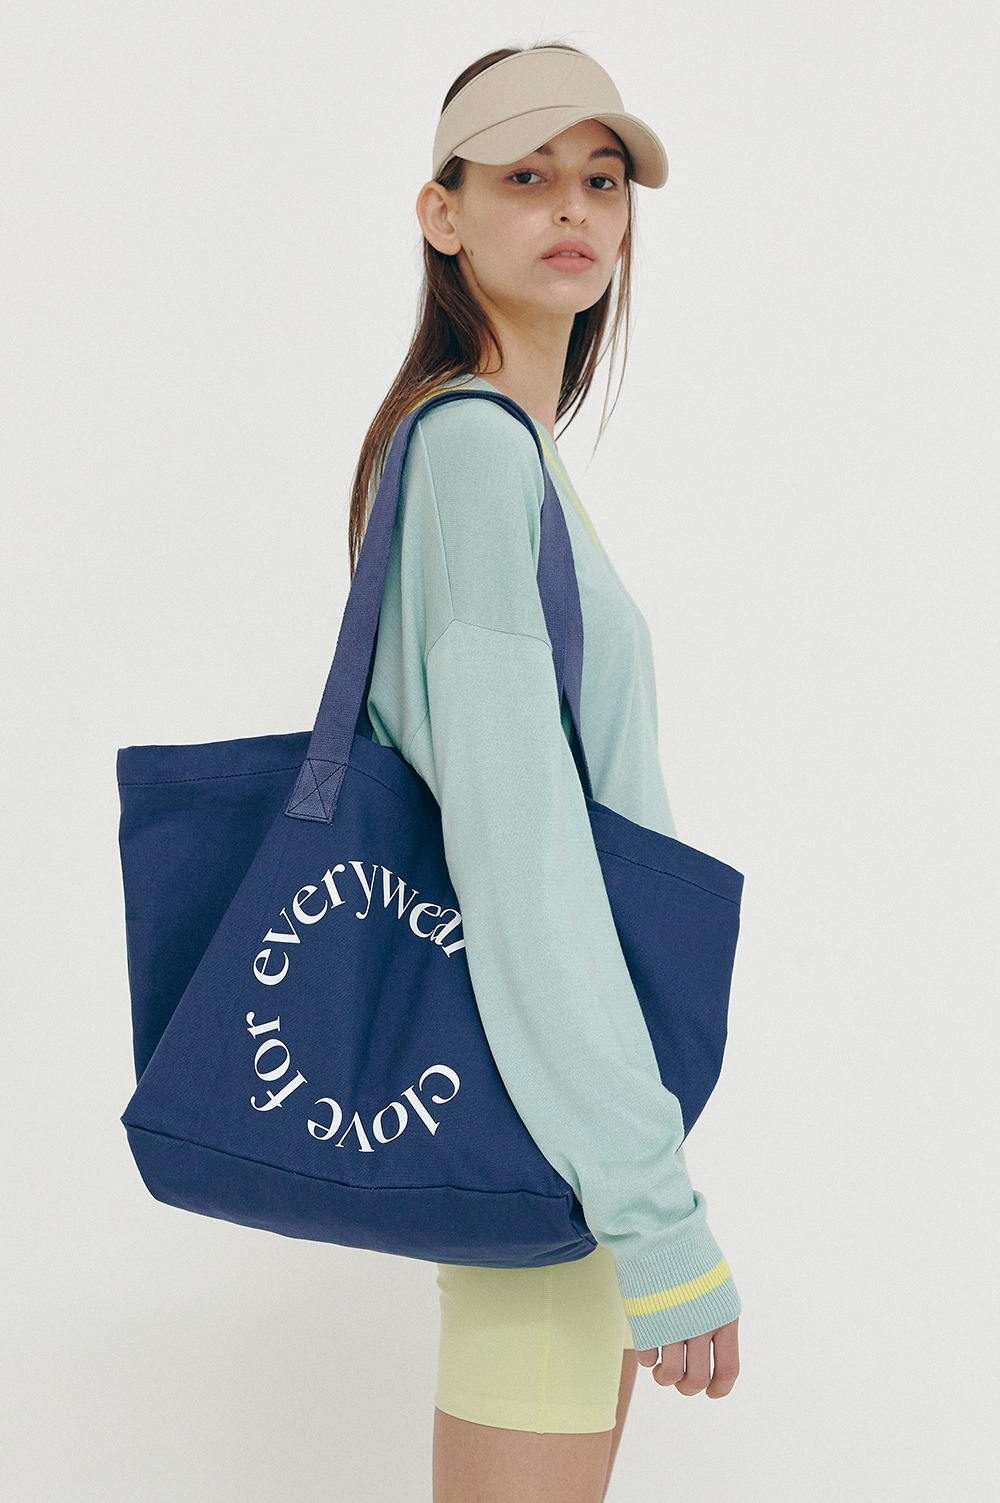 clove - [SS21 clove] Logo Cotton Totebag Navy